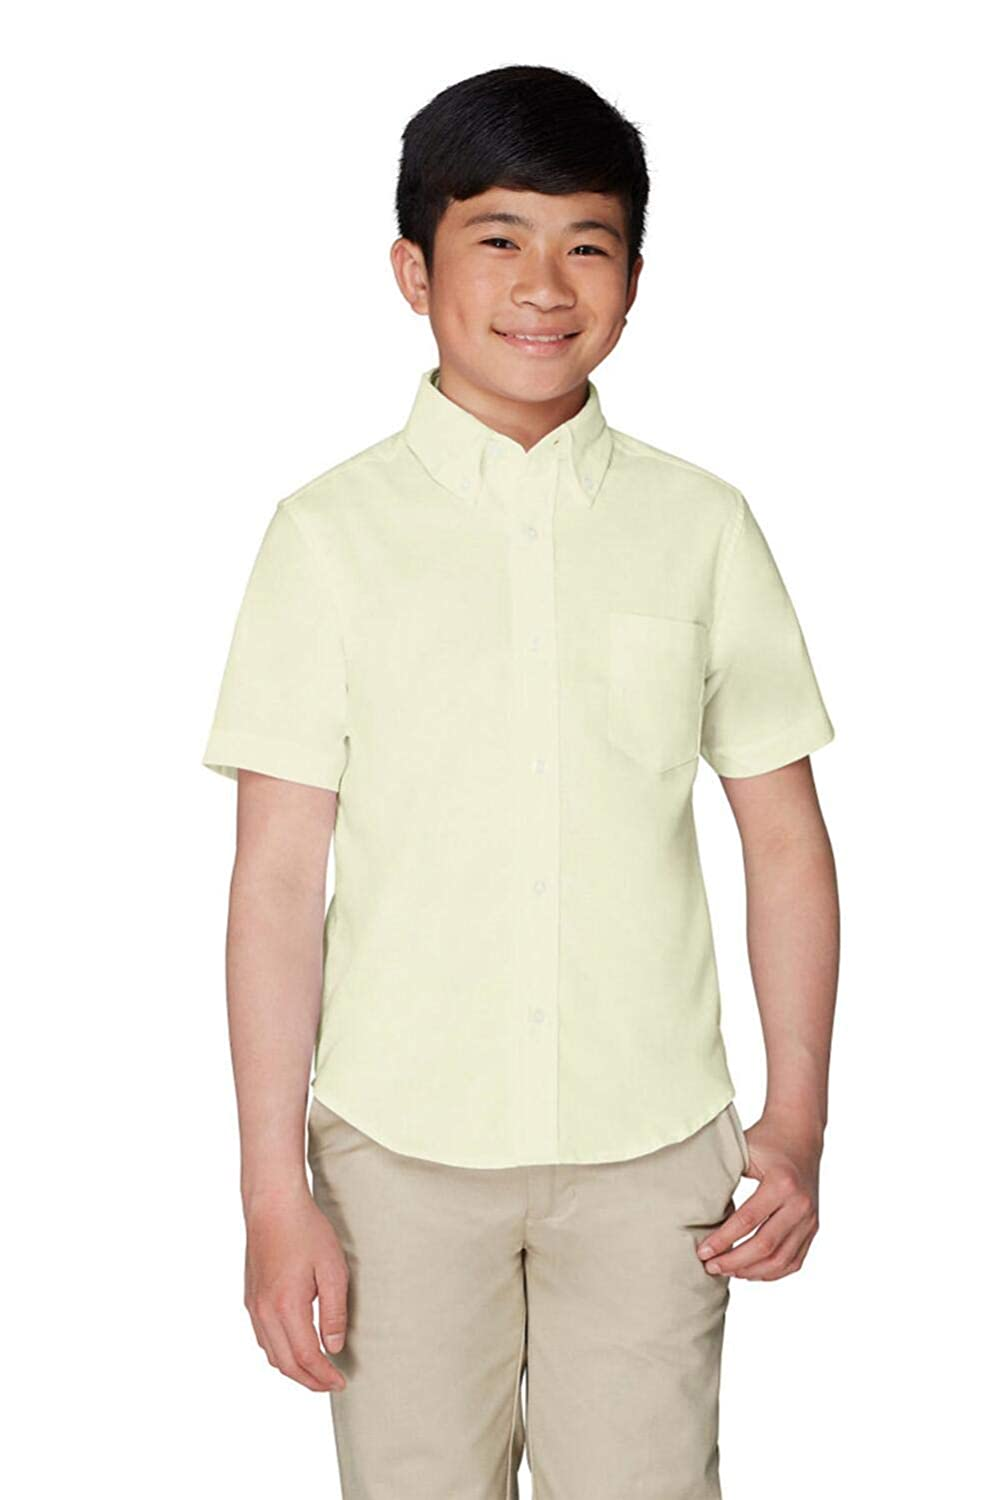 French Toast Boys School Uniforms Short Sleeve Oxford Shirt French Toast School Uniforms 1020R